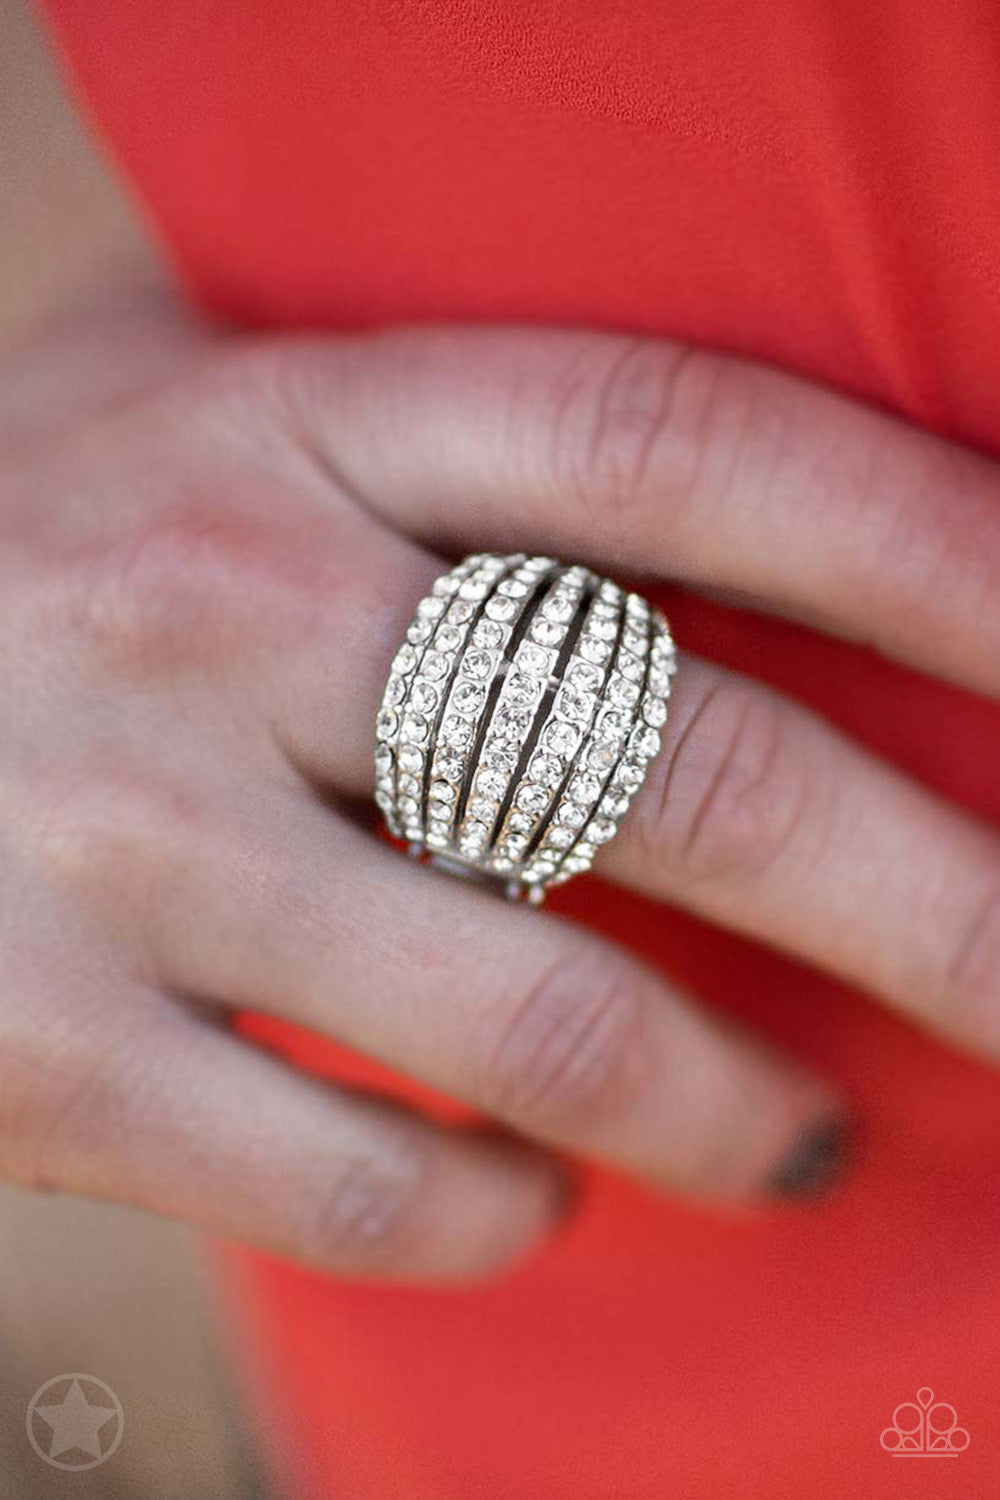 Blinding Brilliance - White Rhinestone Blockbuster Paparazzi Jewelry Ring paparazzi accessories jewelry Ring